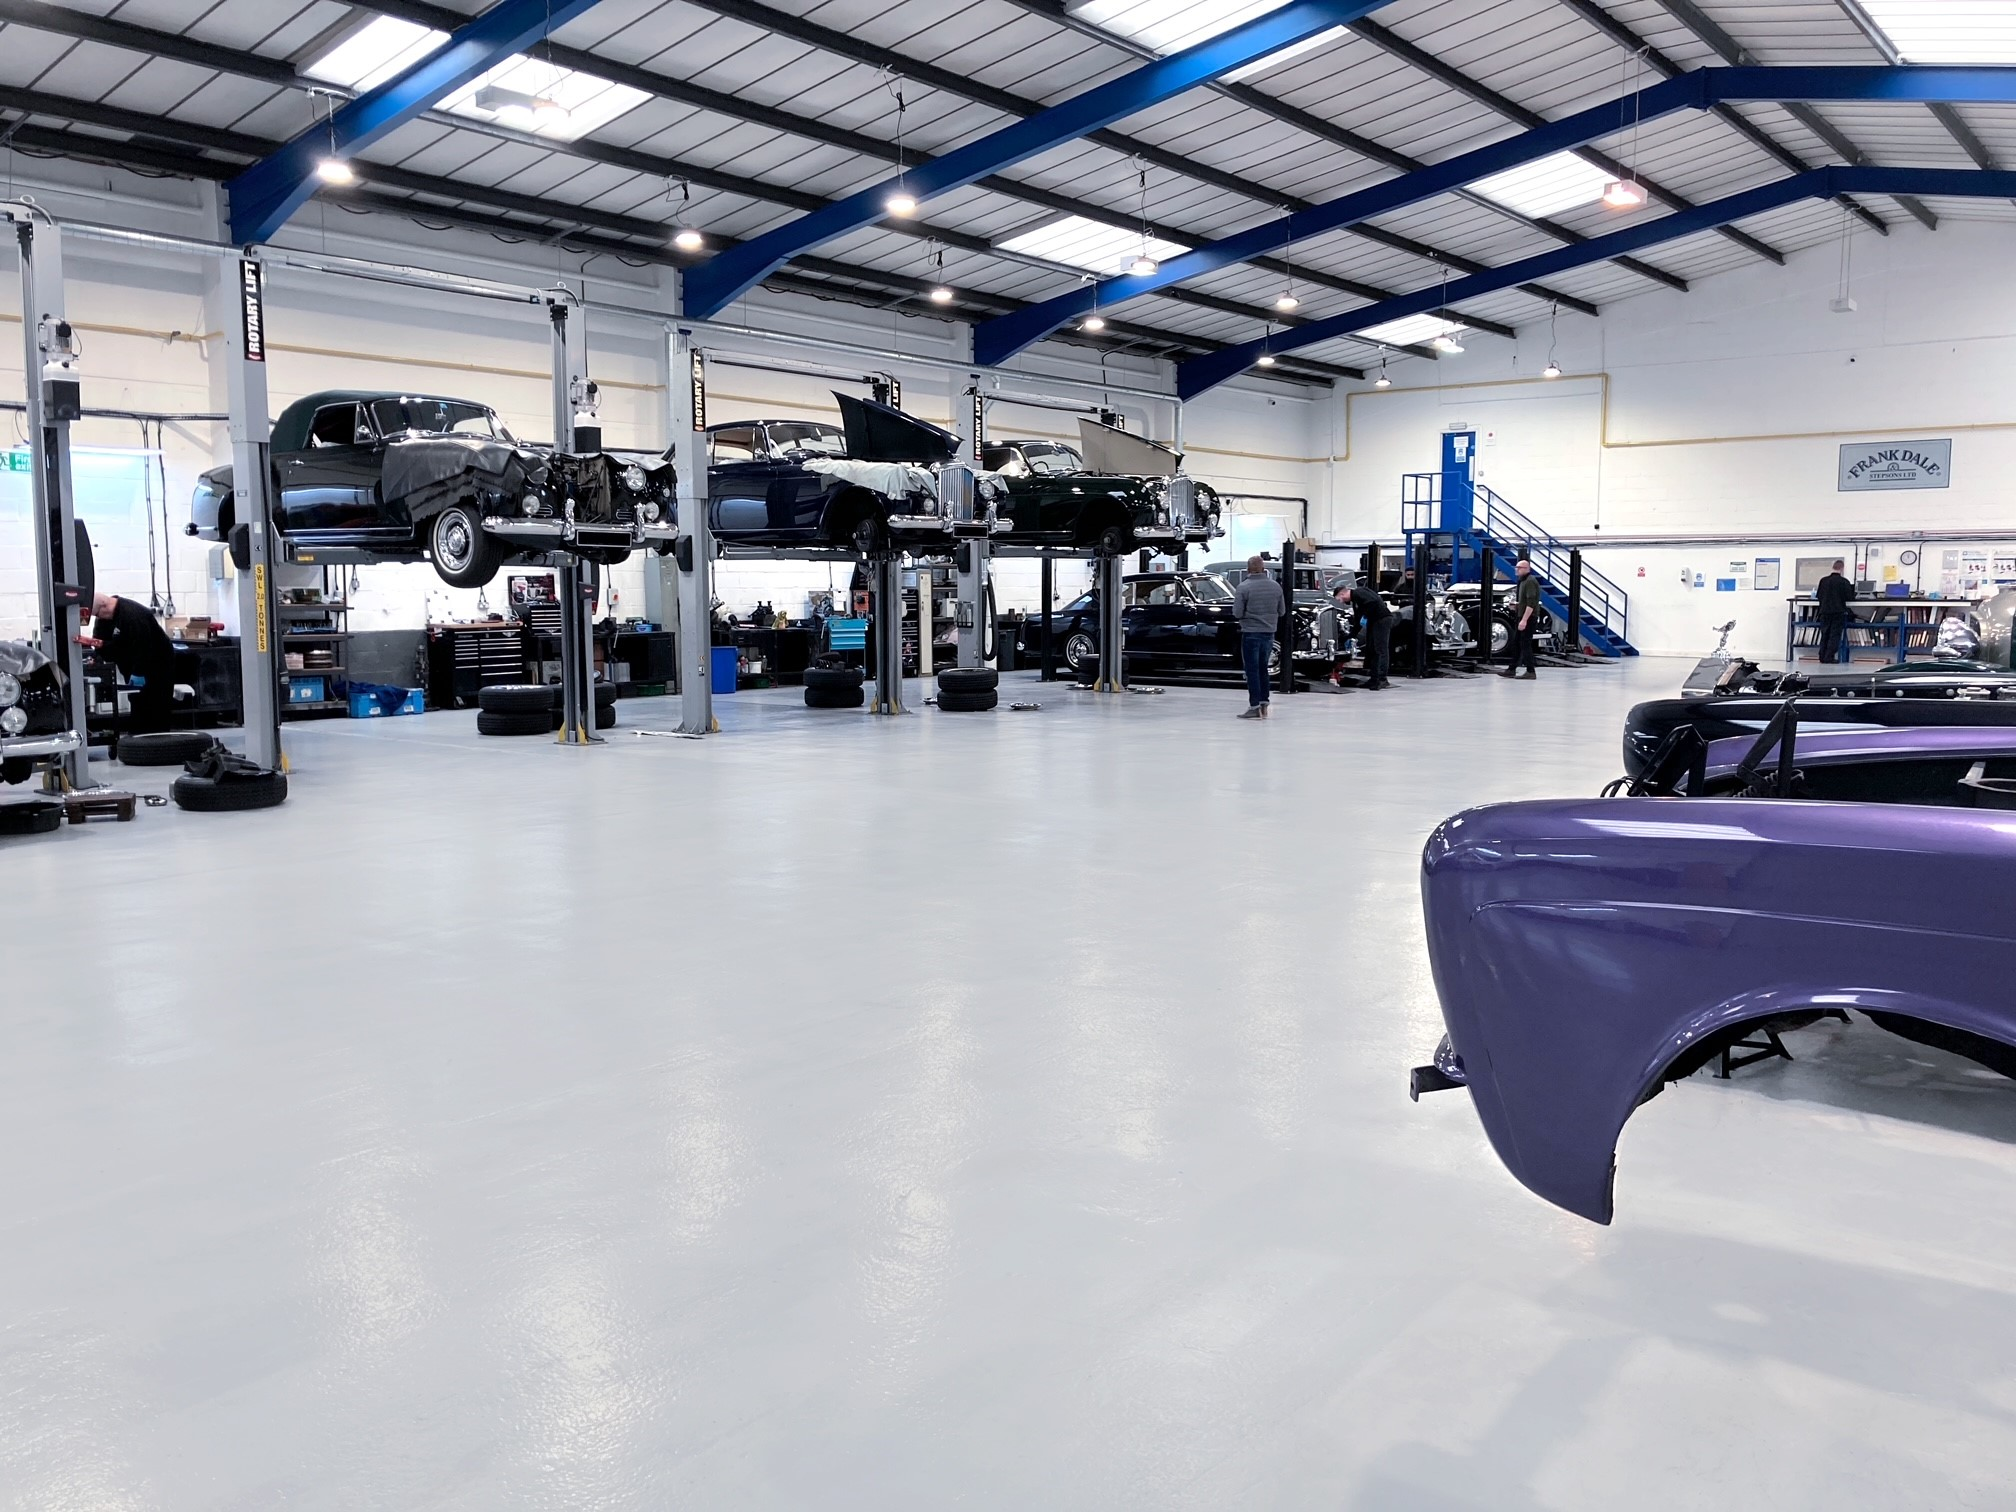 Workshop for modern and classic Bentley and Rolls-Royce cars